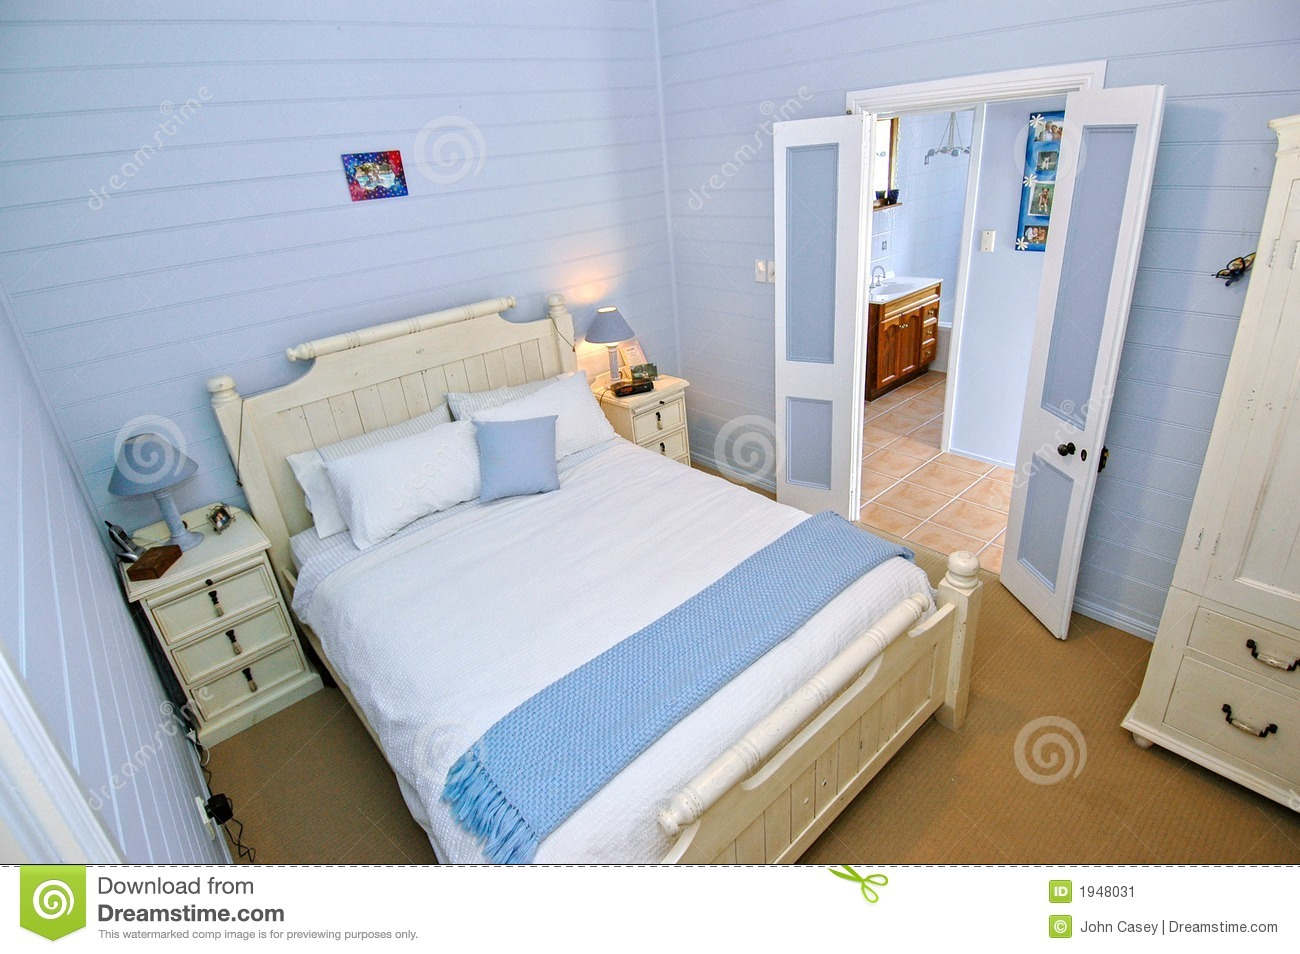 bedroom with light blue walls stock image image 1948031. Black Bedroom Furniture Sets. Home Design Ideas